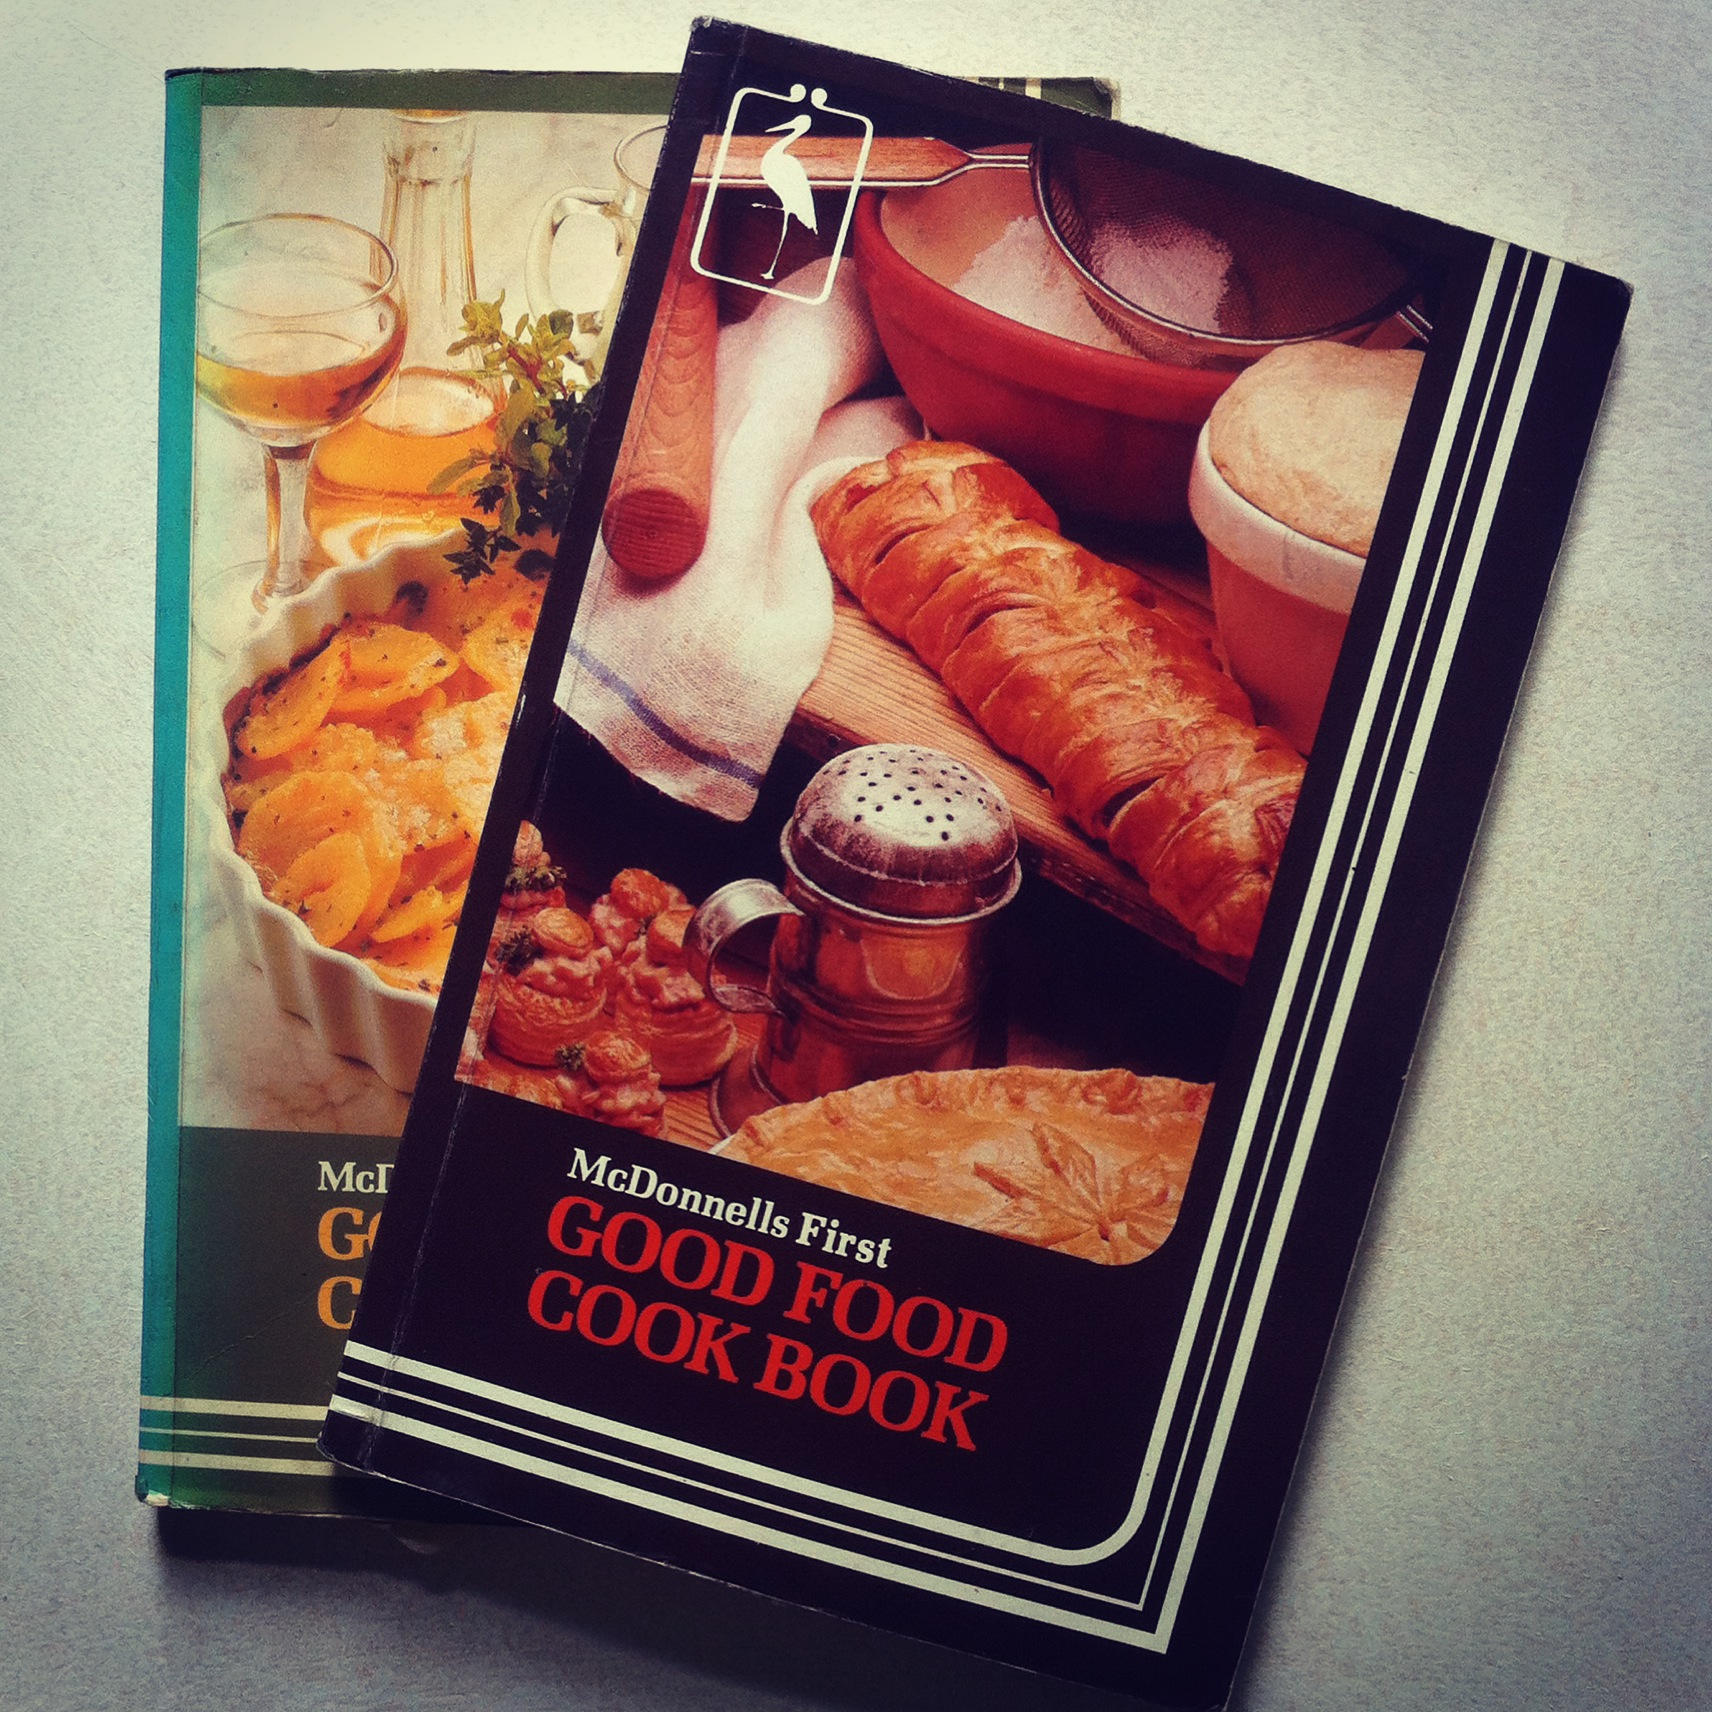 Good Meals To Cook: An Old Favourite: McDonnell's Good Food Cookbooks And